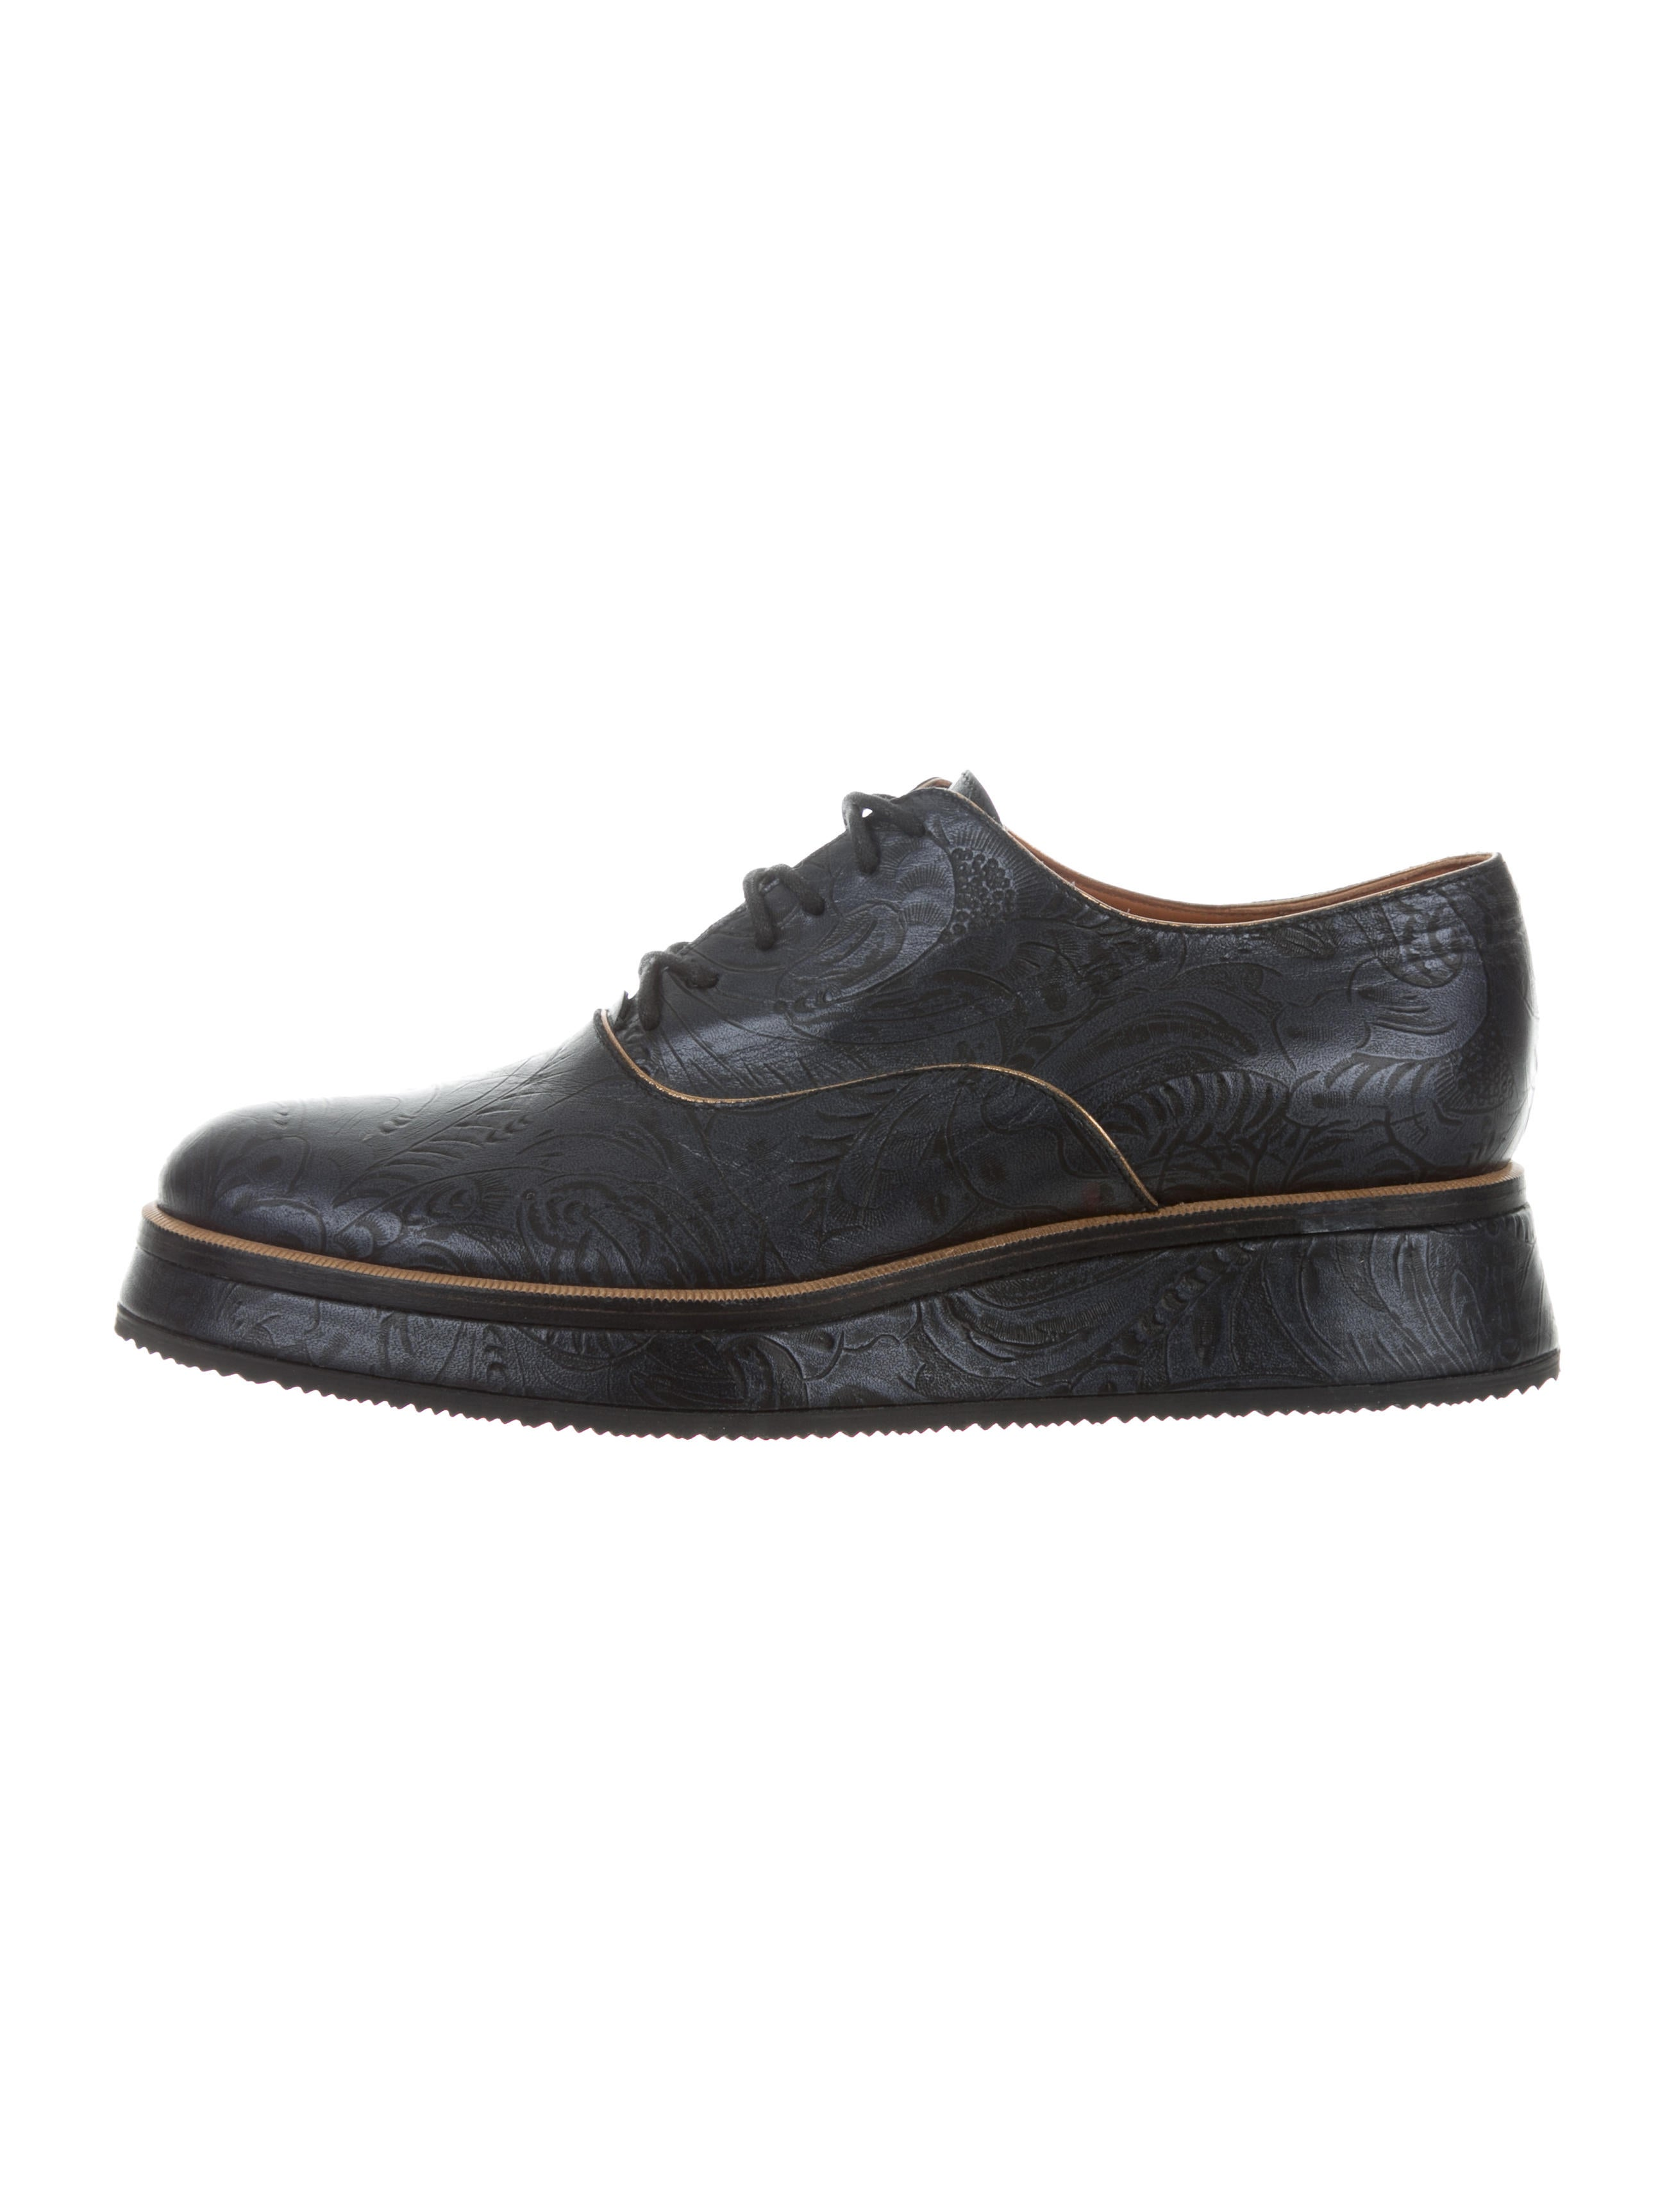 Dries Van Noten Embossed Flatform Oxfords newest for sale cheap price wholesale price clearance purchase sale eastbay 9Vs3A1k